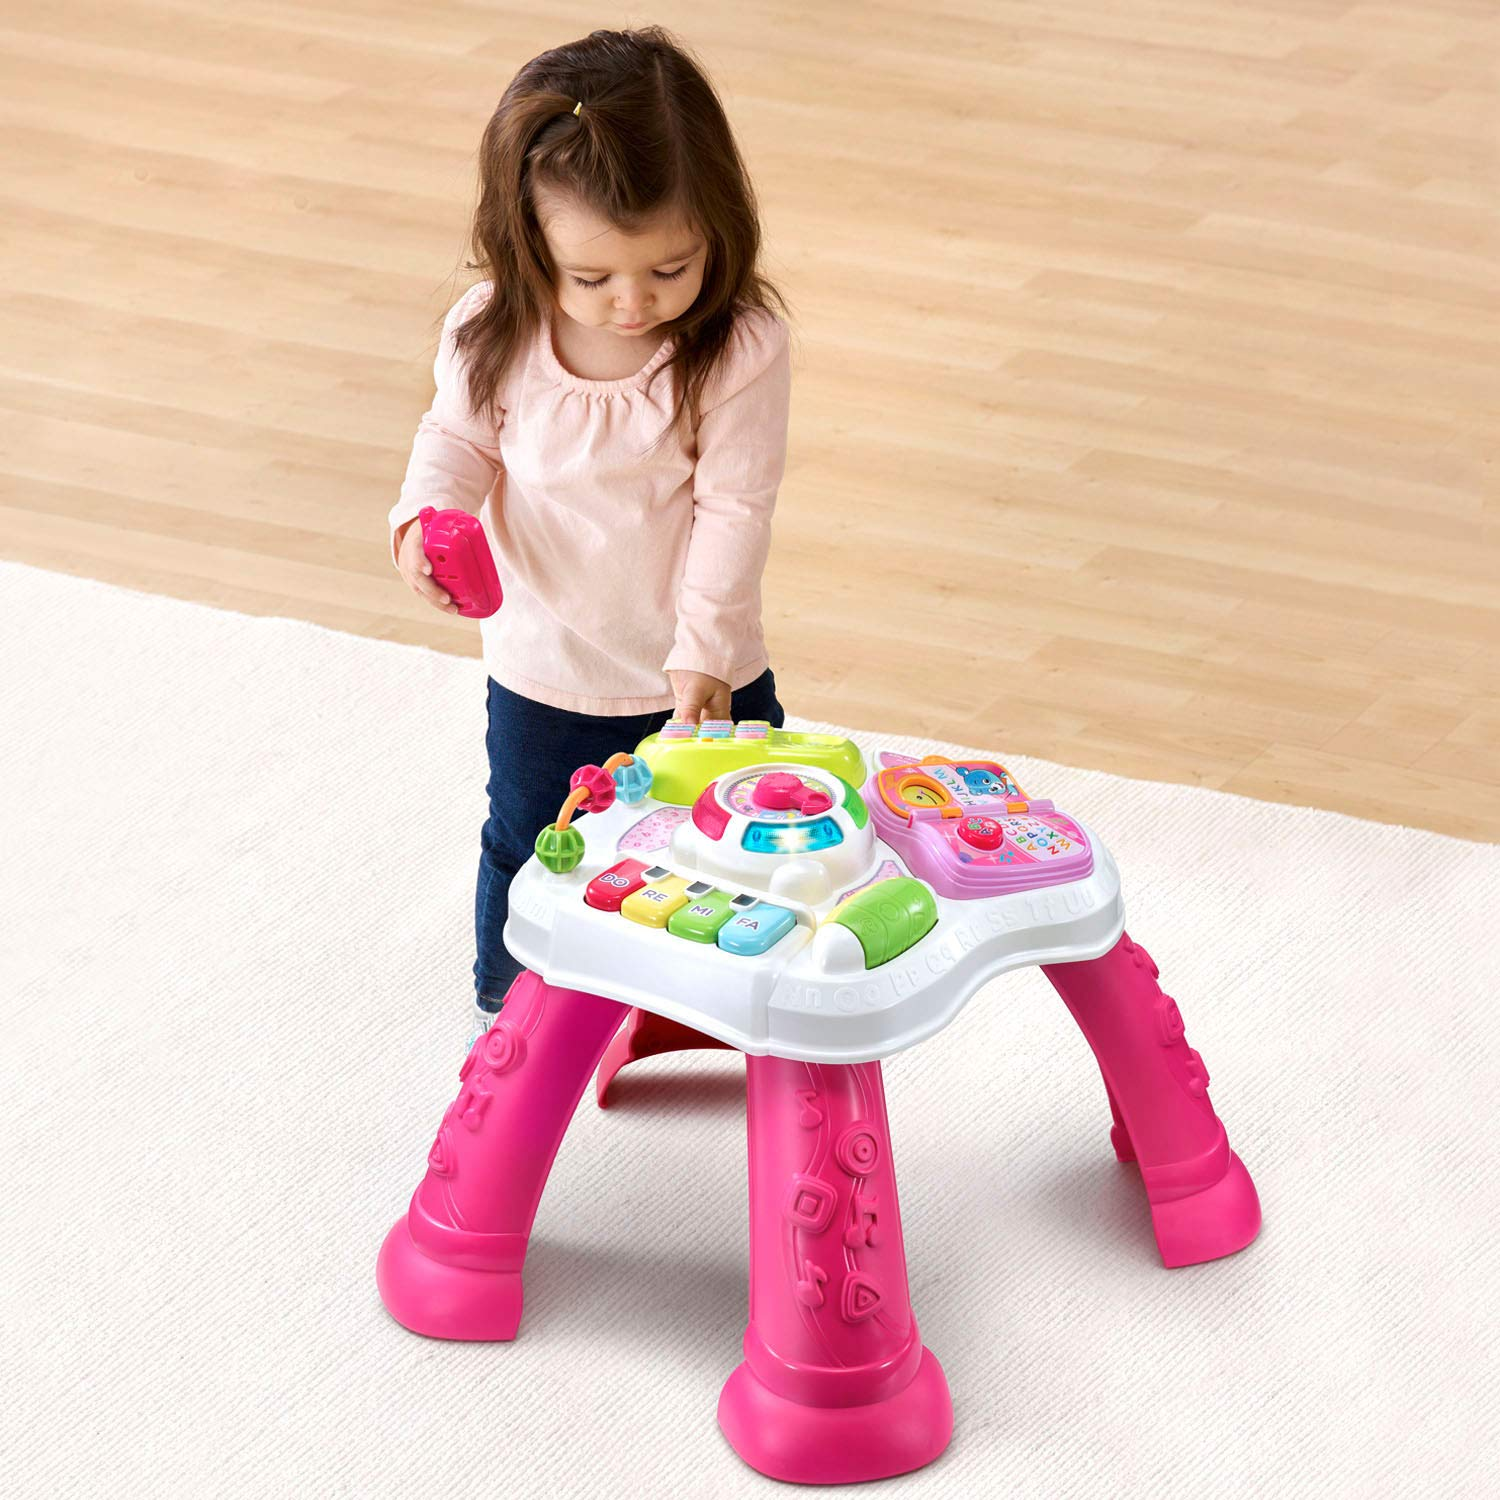 VTech Sit-To-Stand Learn & Discover Table, Pink by VTech (Image #7)